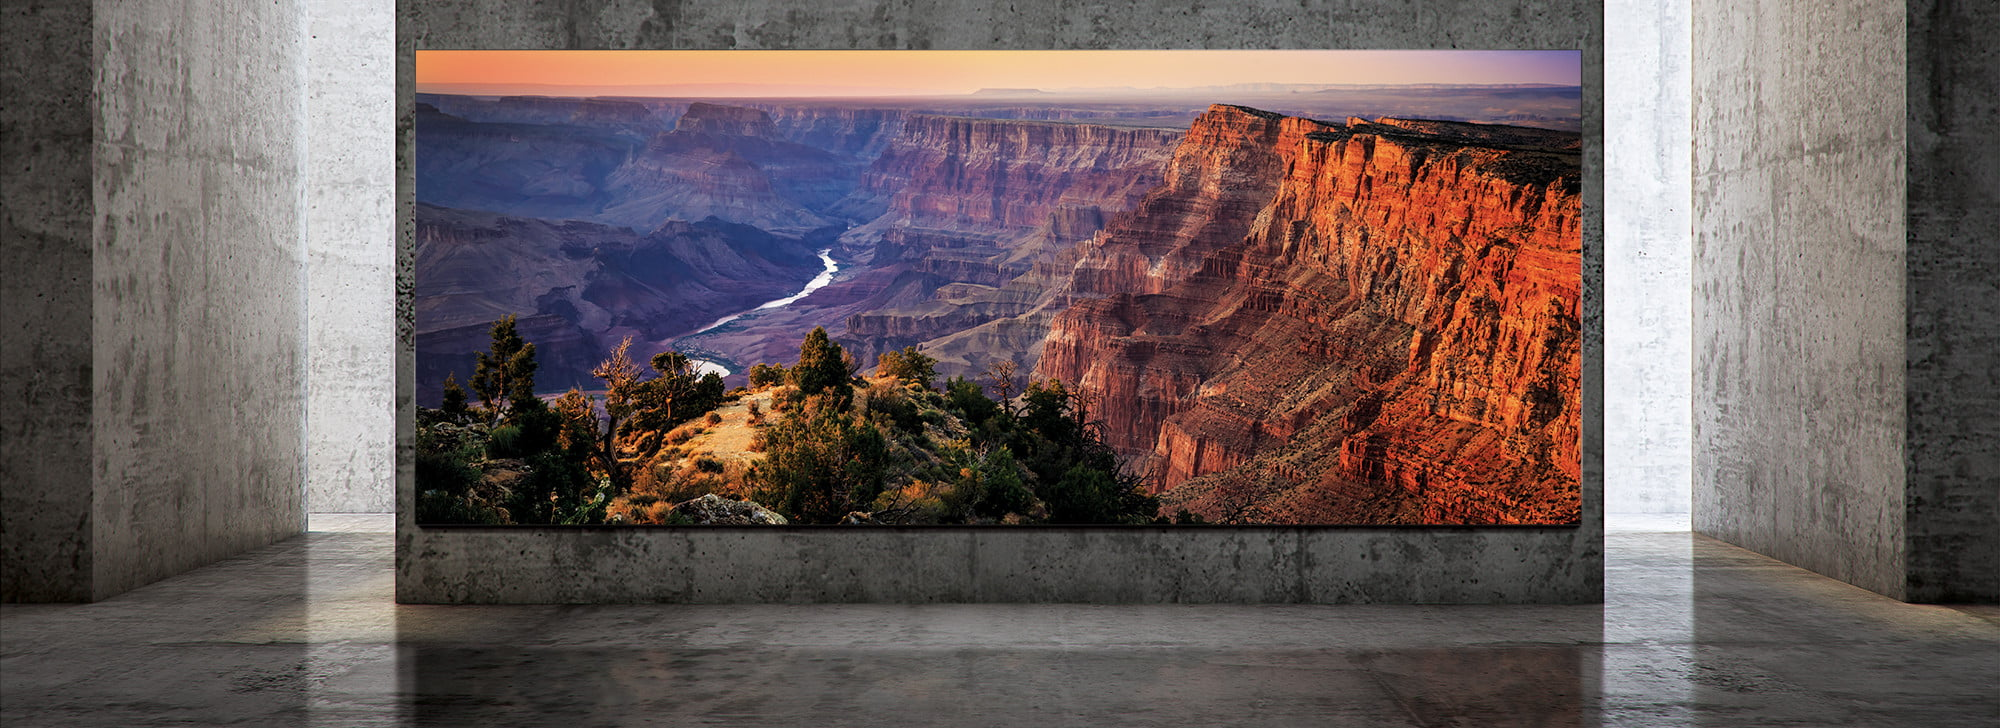 At 292 inches, Samsung's The Wall Luxury TV turns any surface into an 8K cinema